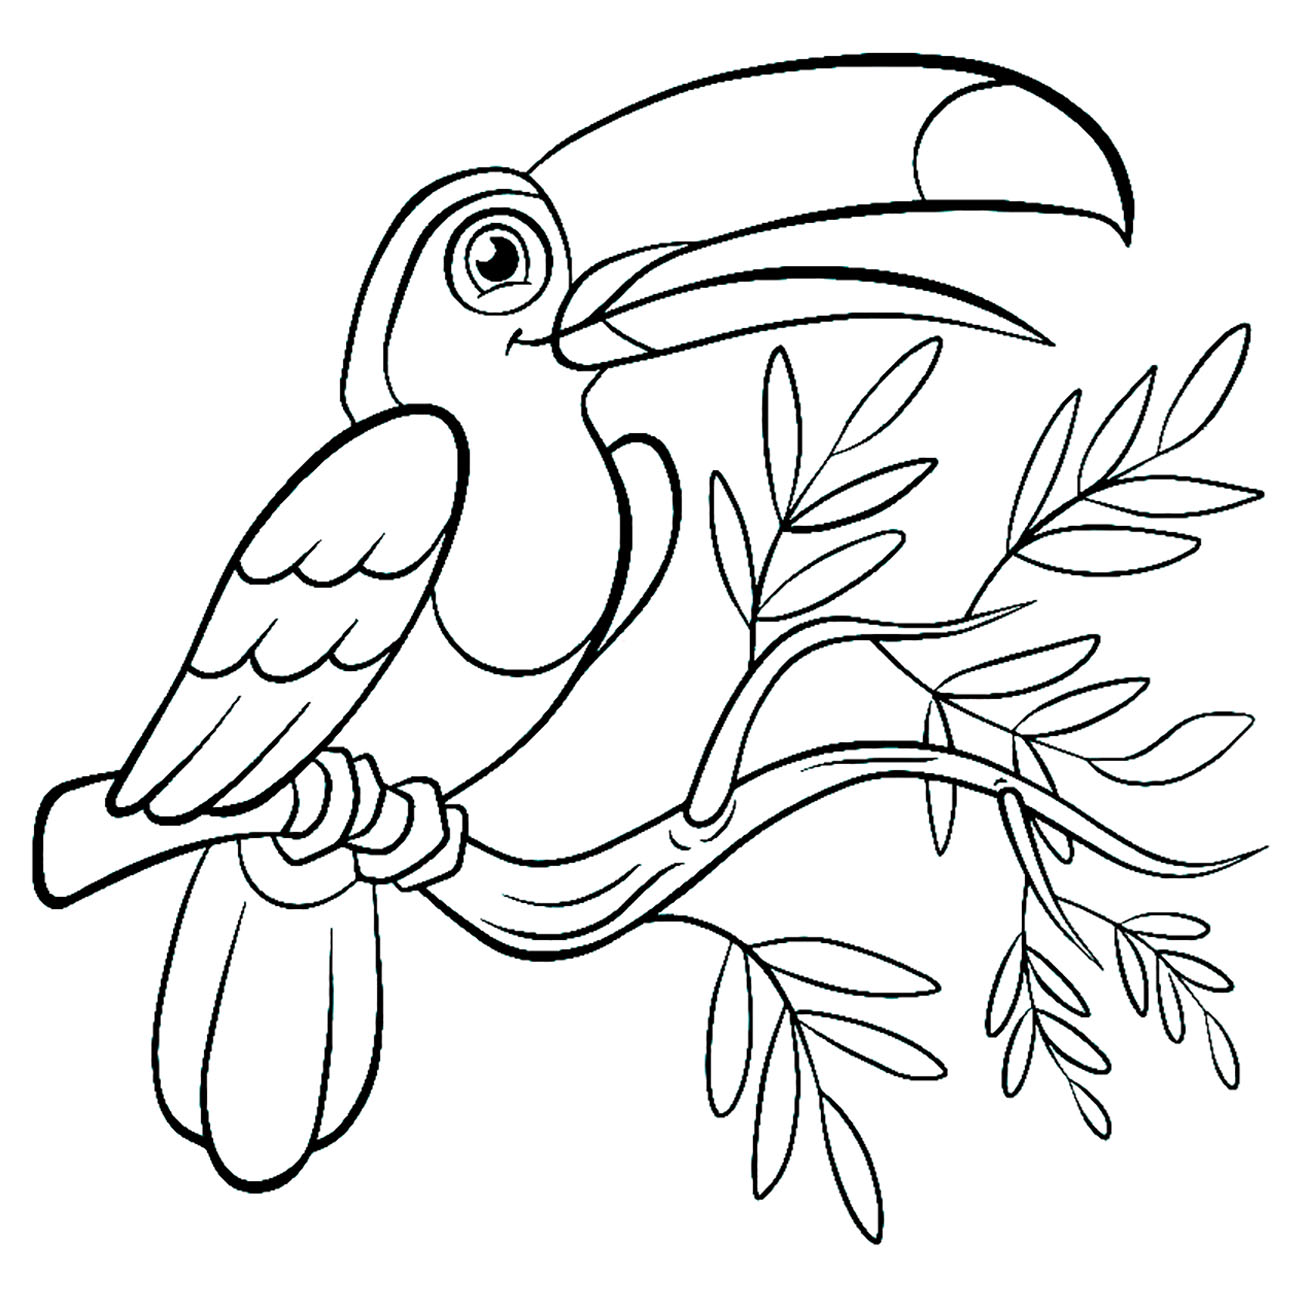 Printable Birds coloring page to print and color